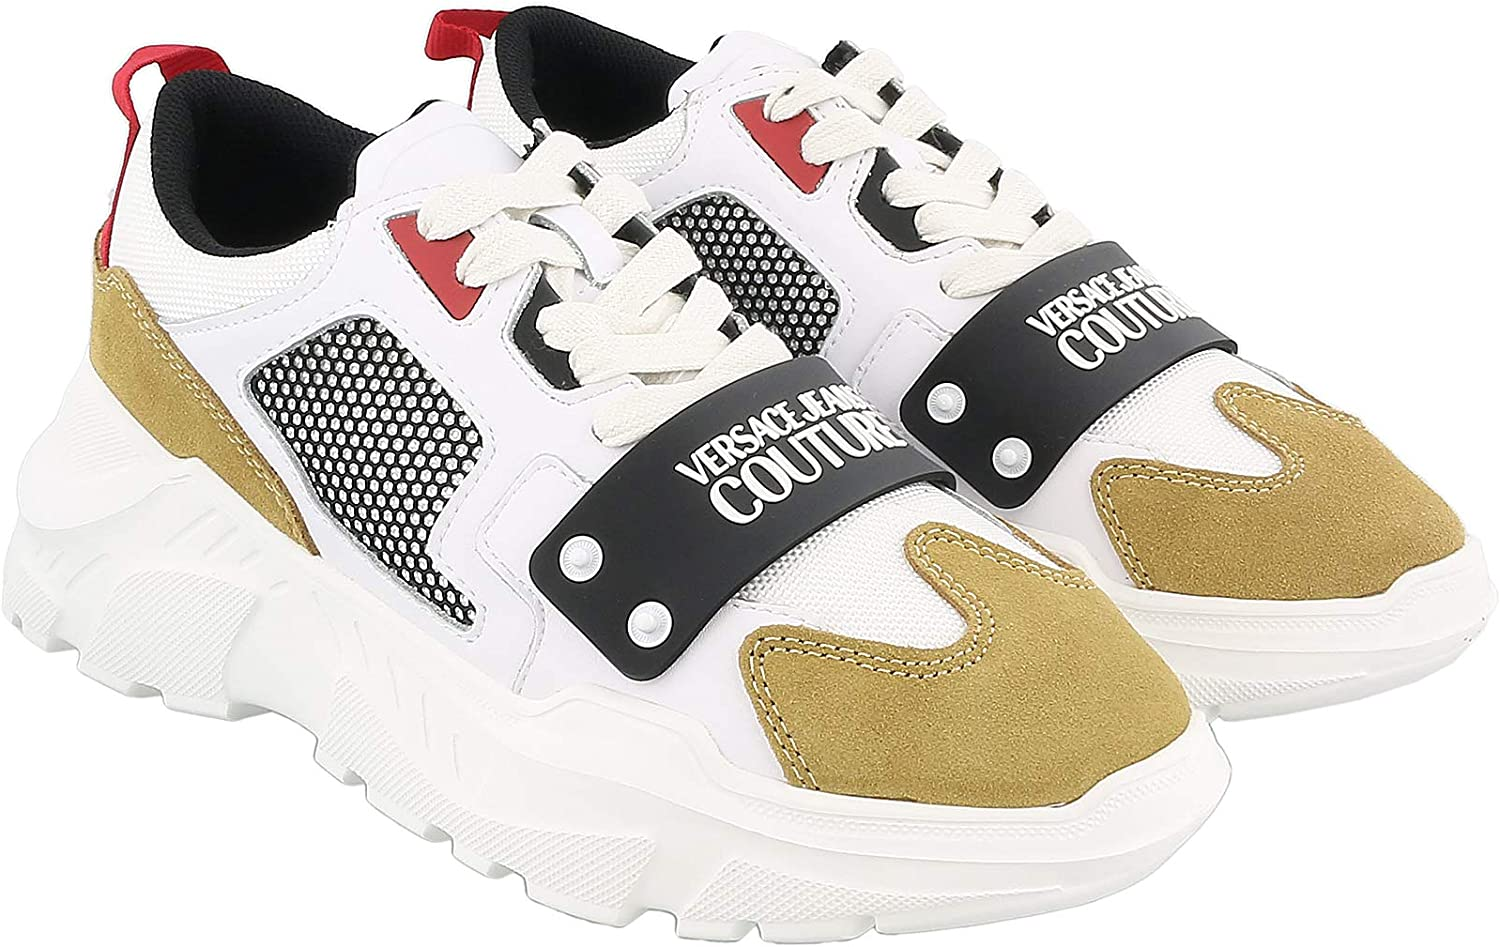 Versace Jeans E0.YVBSC4.71381 Sneakers Homme: MainApps